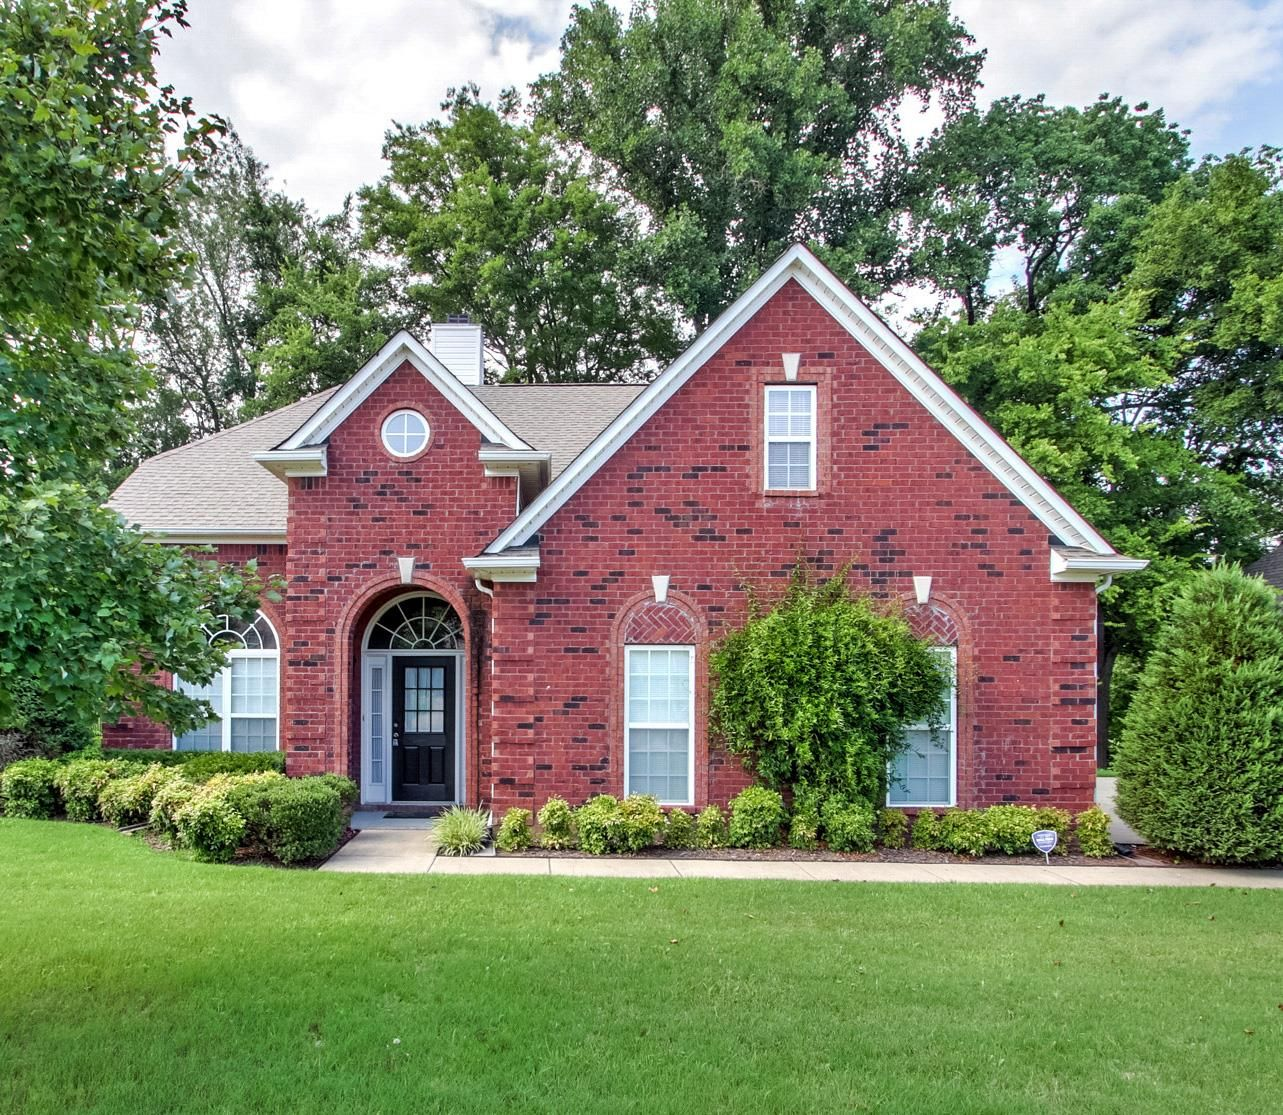 homes for sale by owner in la vergne tn